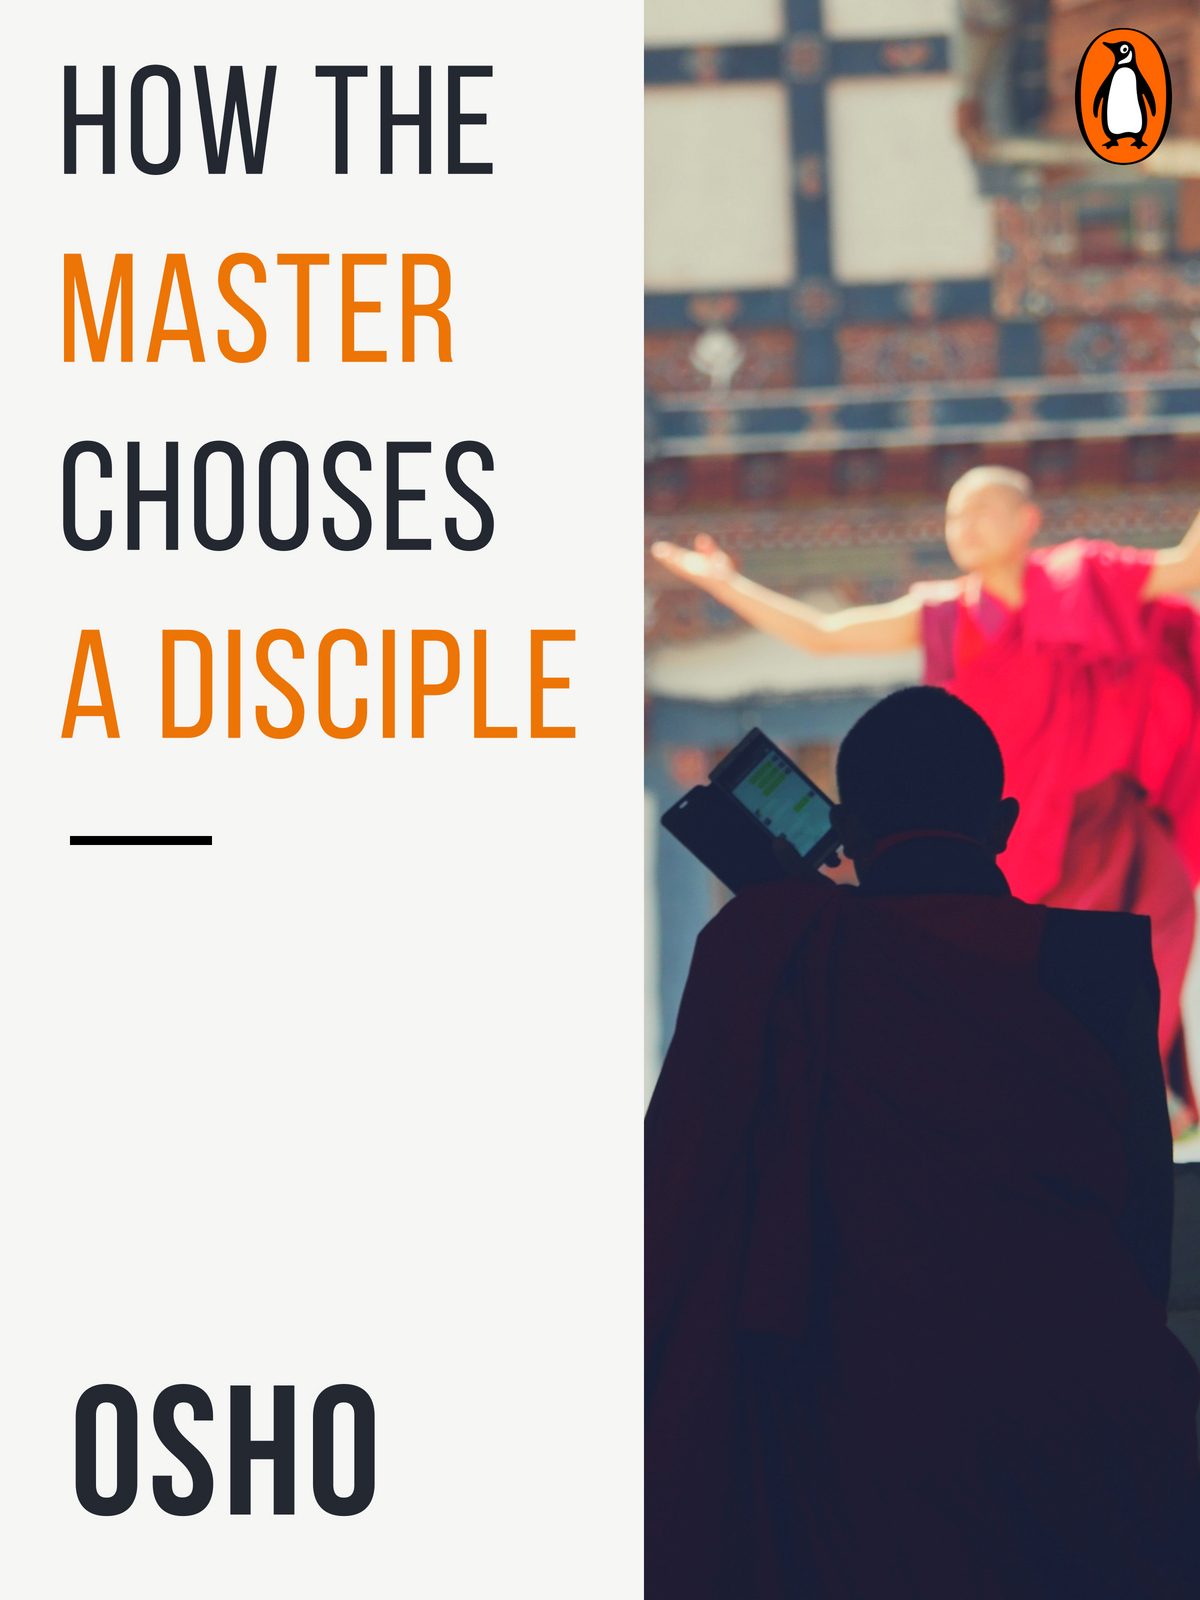 How the Master Chooses a Disciple